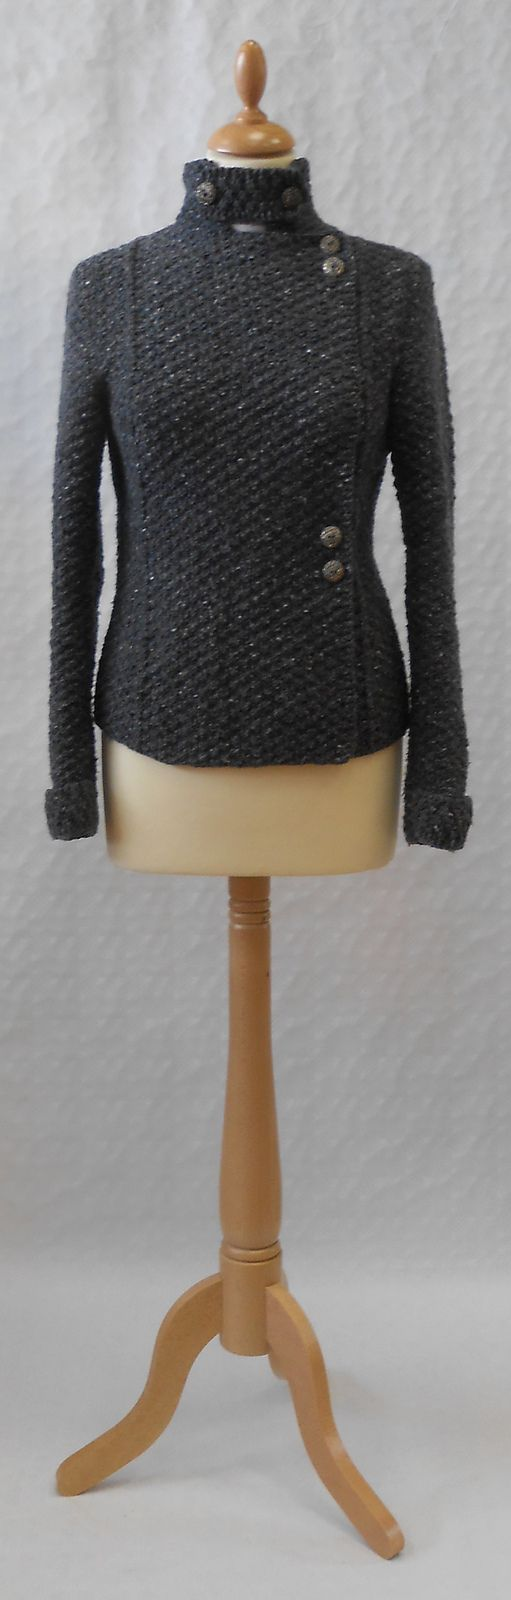 Ravelry: Military Jacket by Patricia Cox